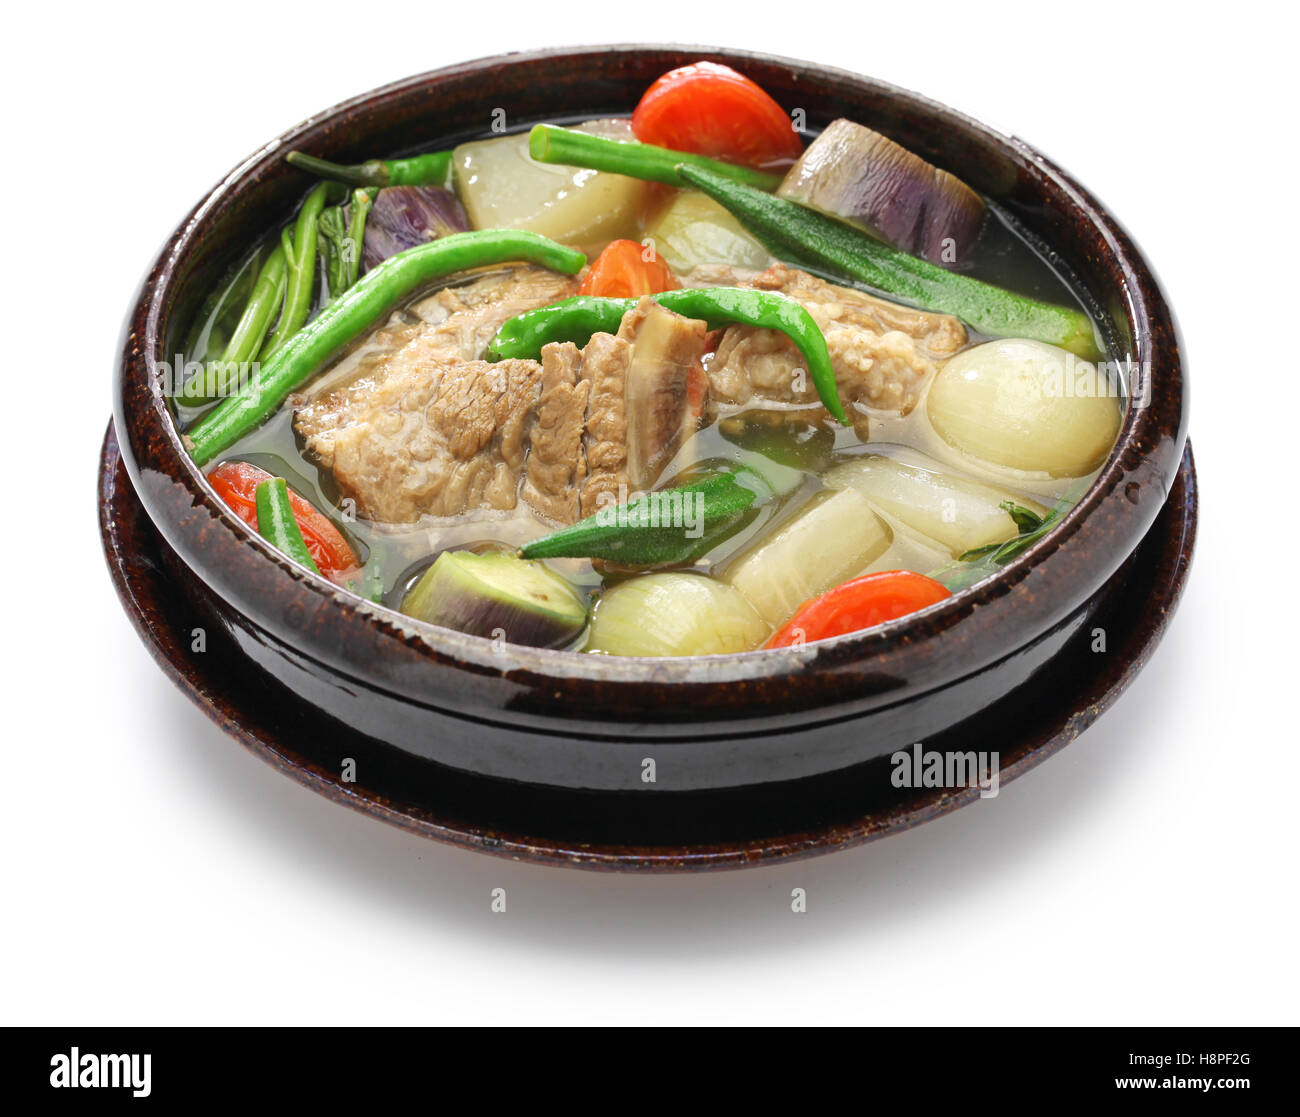 Sinigang Na Baboy Pork Sinigang Filipino Cuisine Stock Photo Alamy